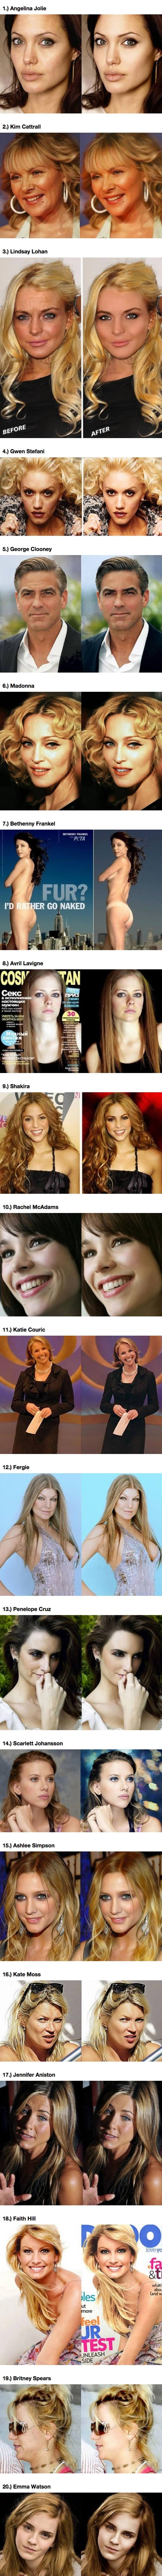 funny-celebs-photoshop-before-after